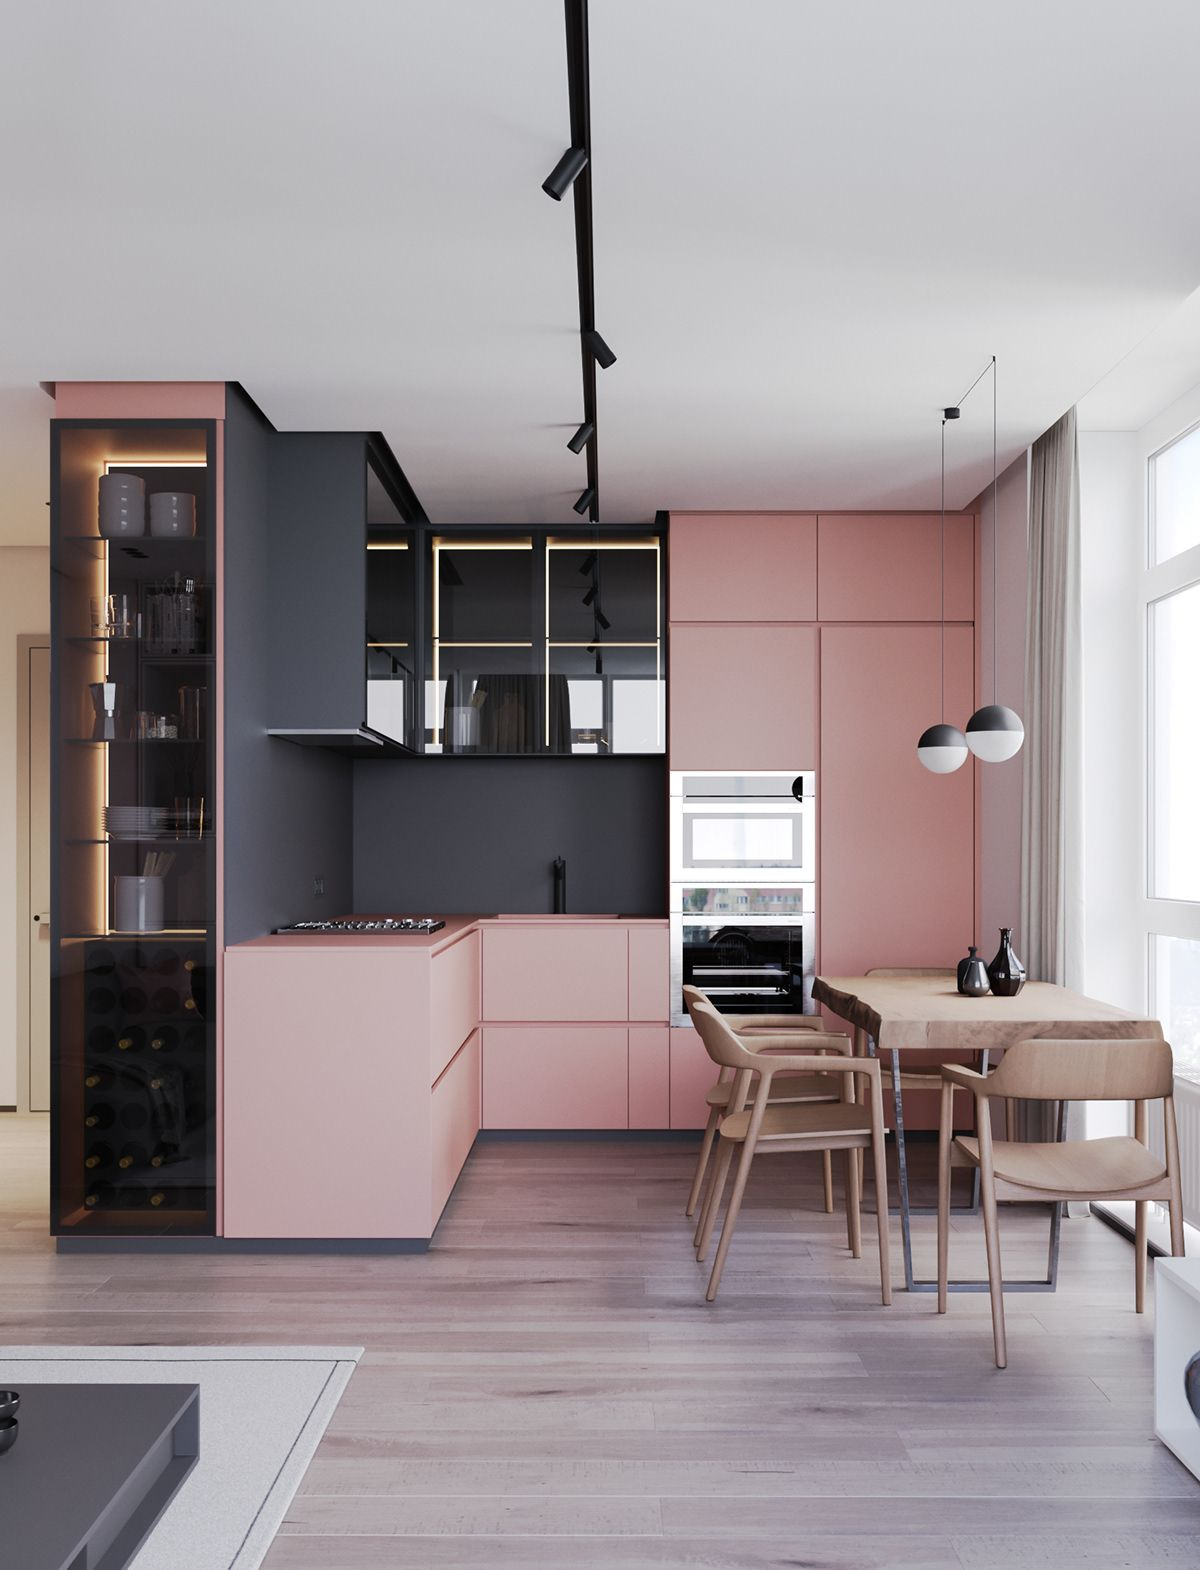 Blush pink and Blue Kitchen \ French Quarter on Behance